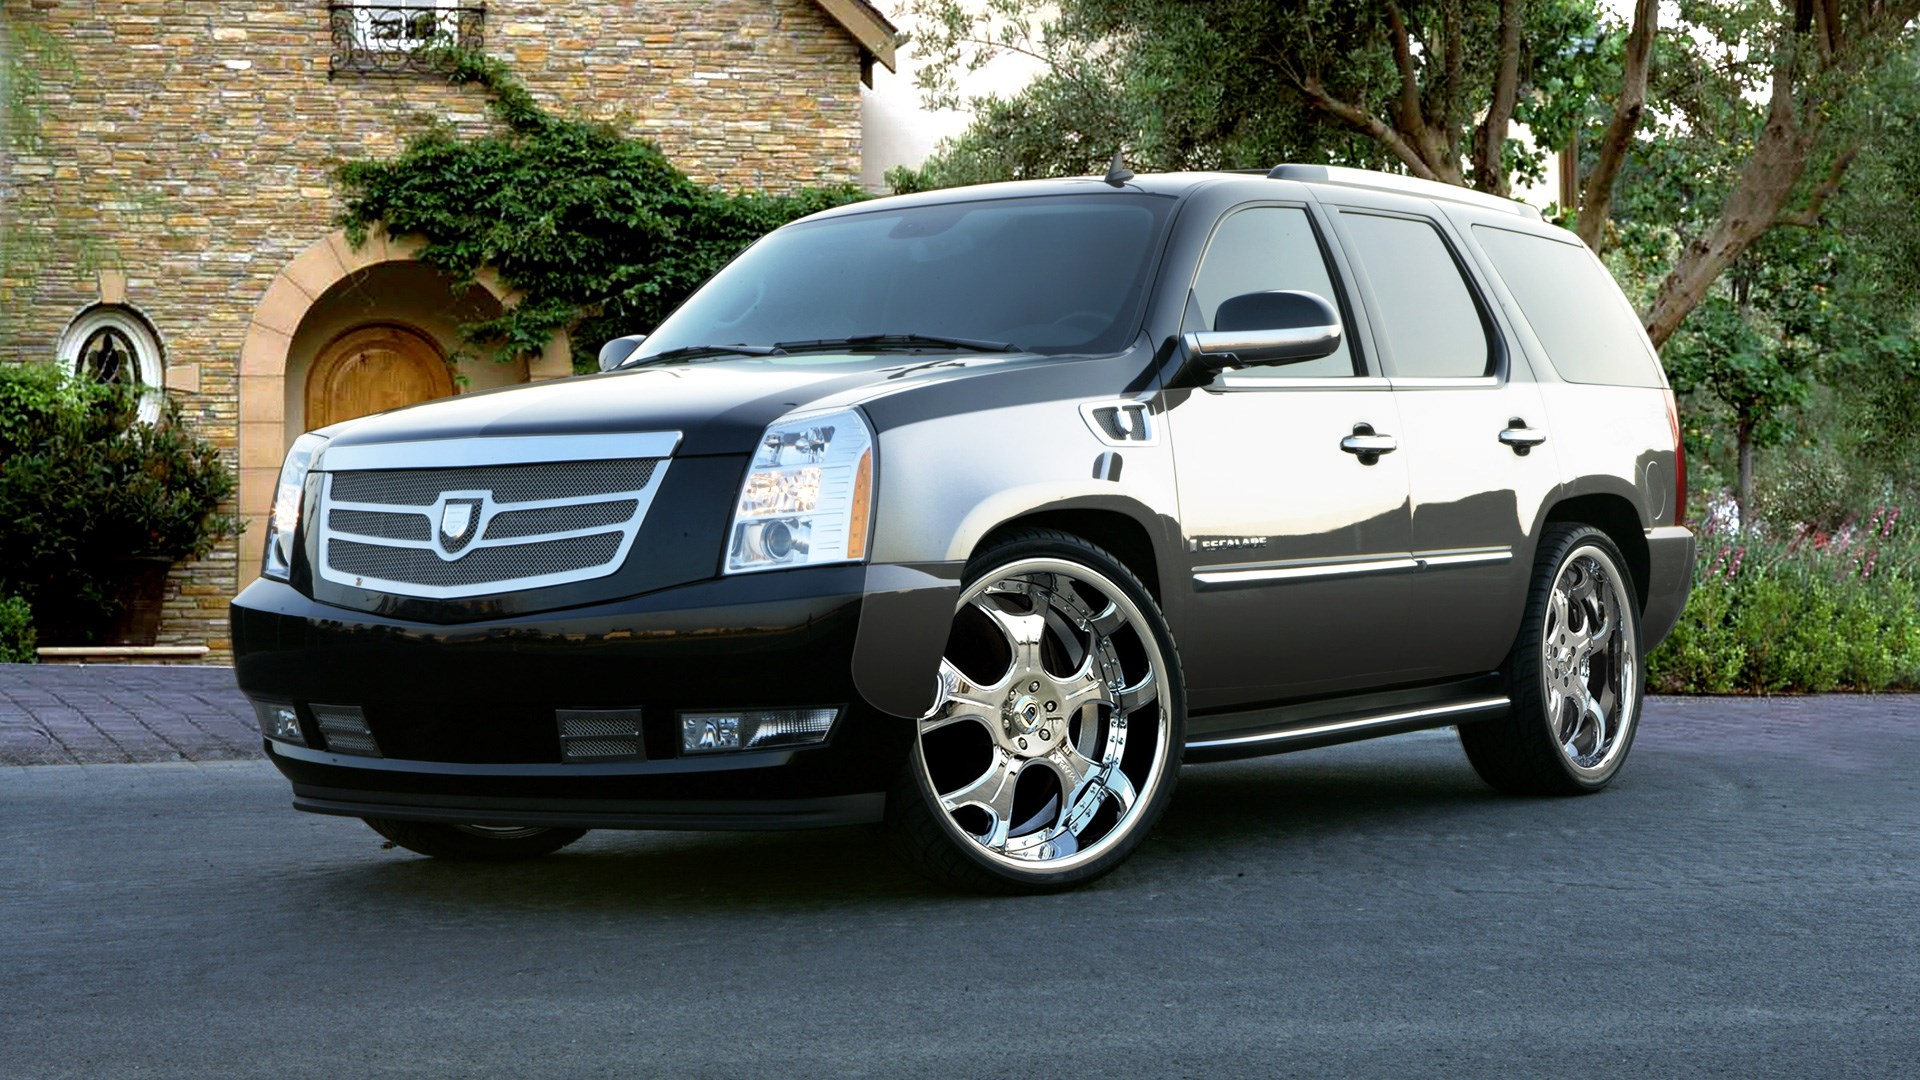 cadillac-escalade-backgrounds-for-desktop-hd-backgrounds-wallpaper-wp3401138